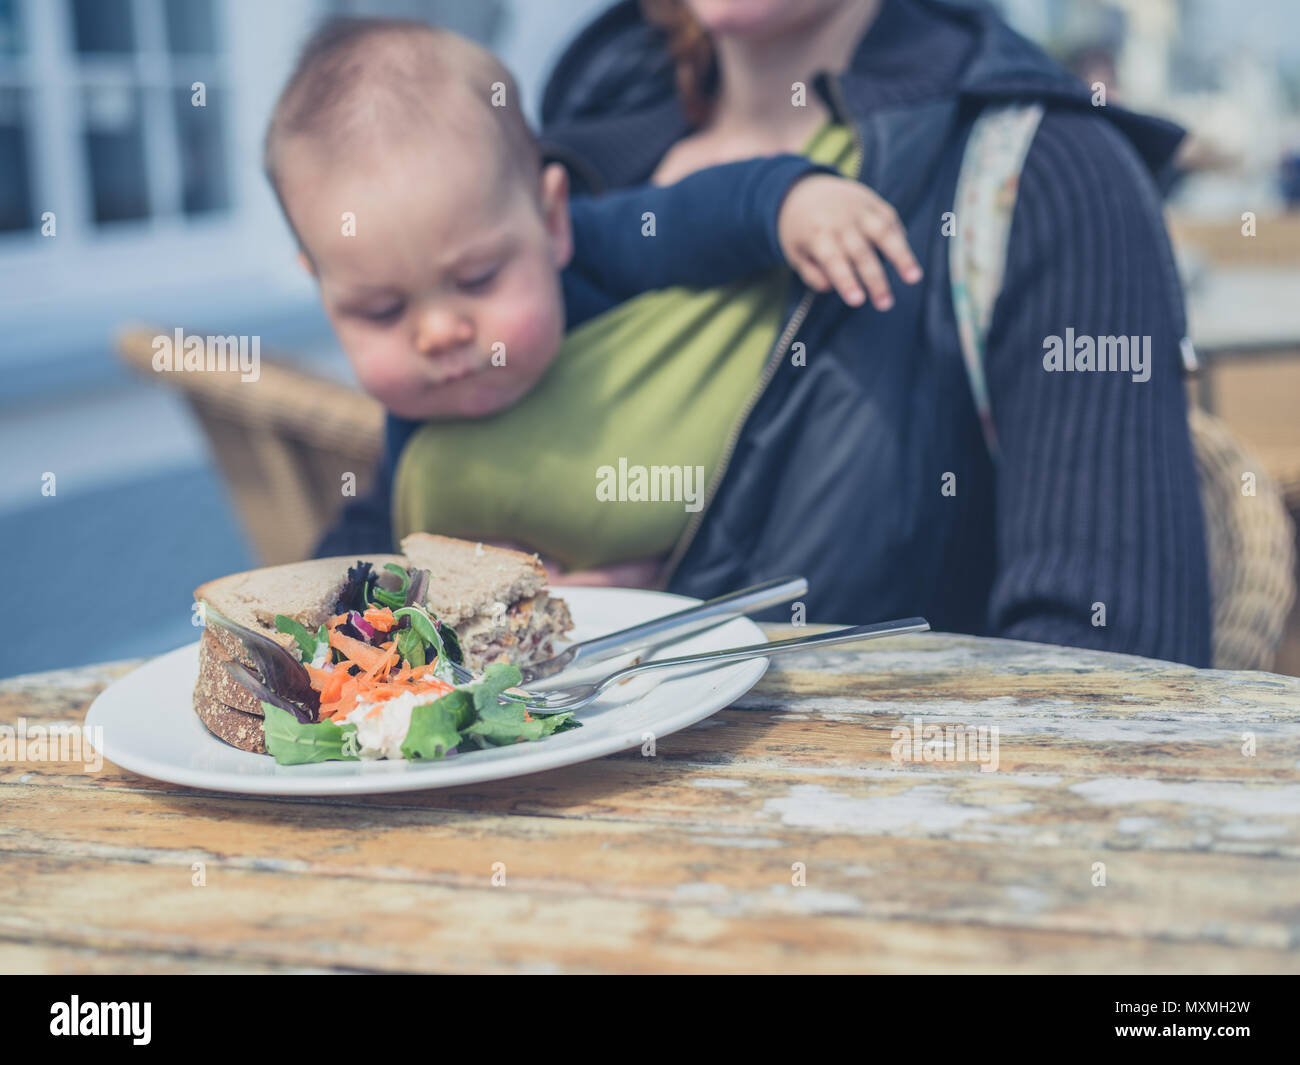 A mother with a baby in a sling is sitting at a table outside with a sandwich - Stock Image